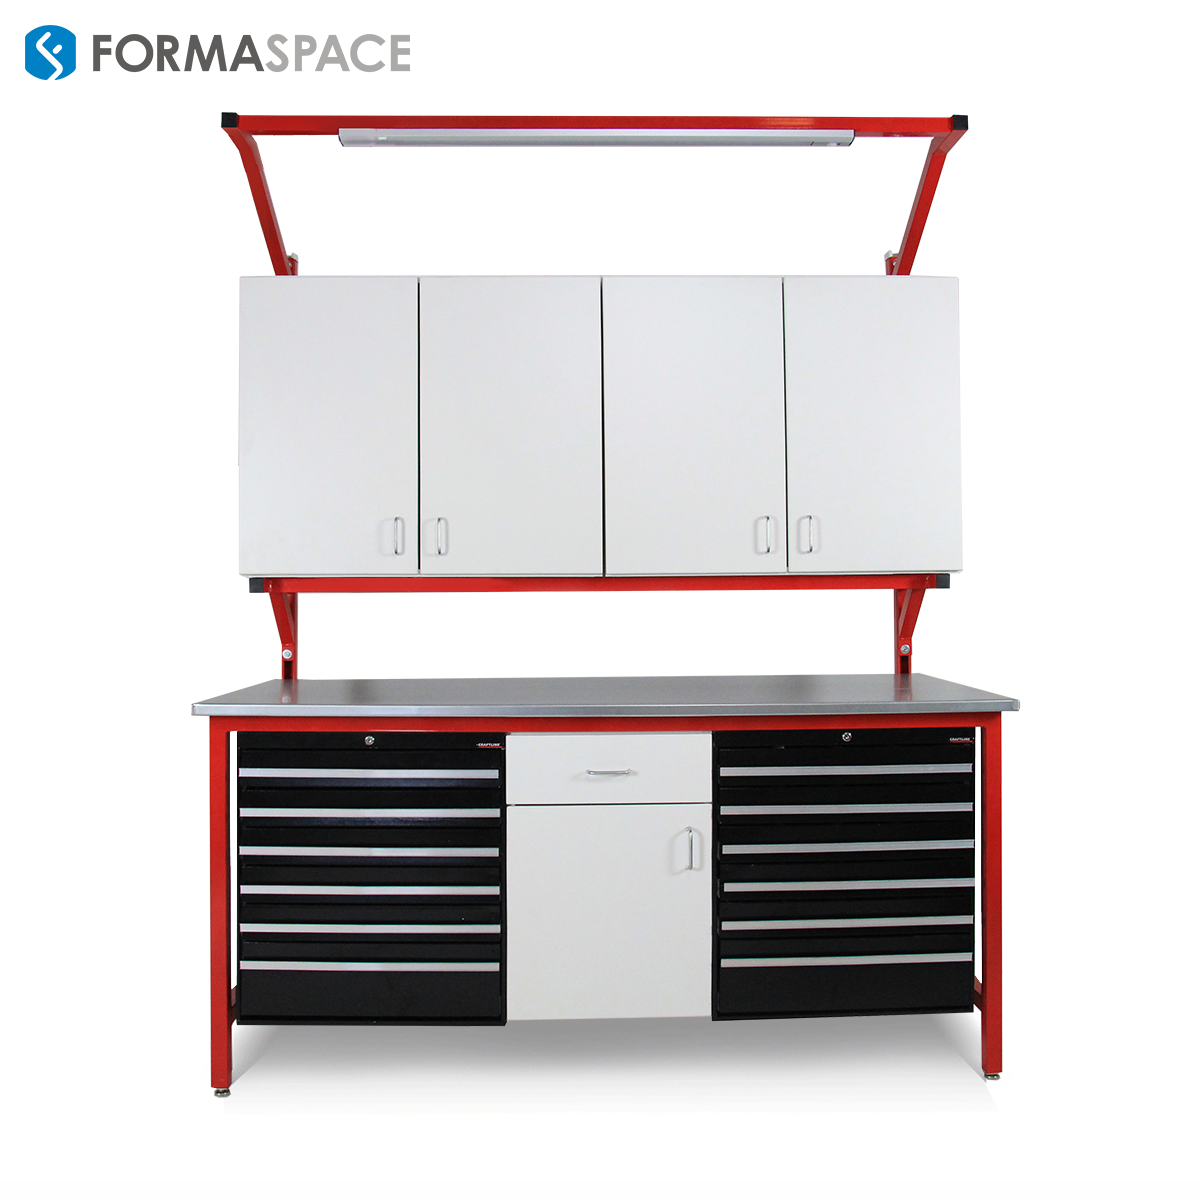 Stainless steel red frame with a resistant countertop and full of storage and drawers.